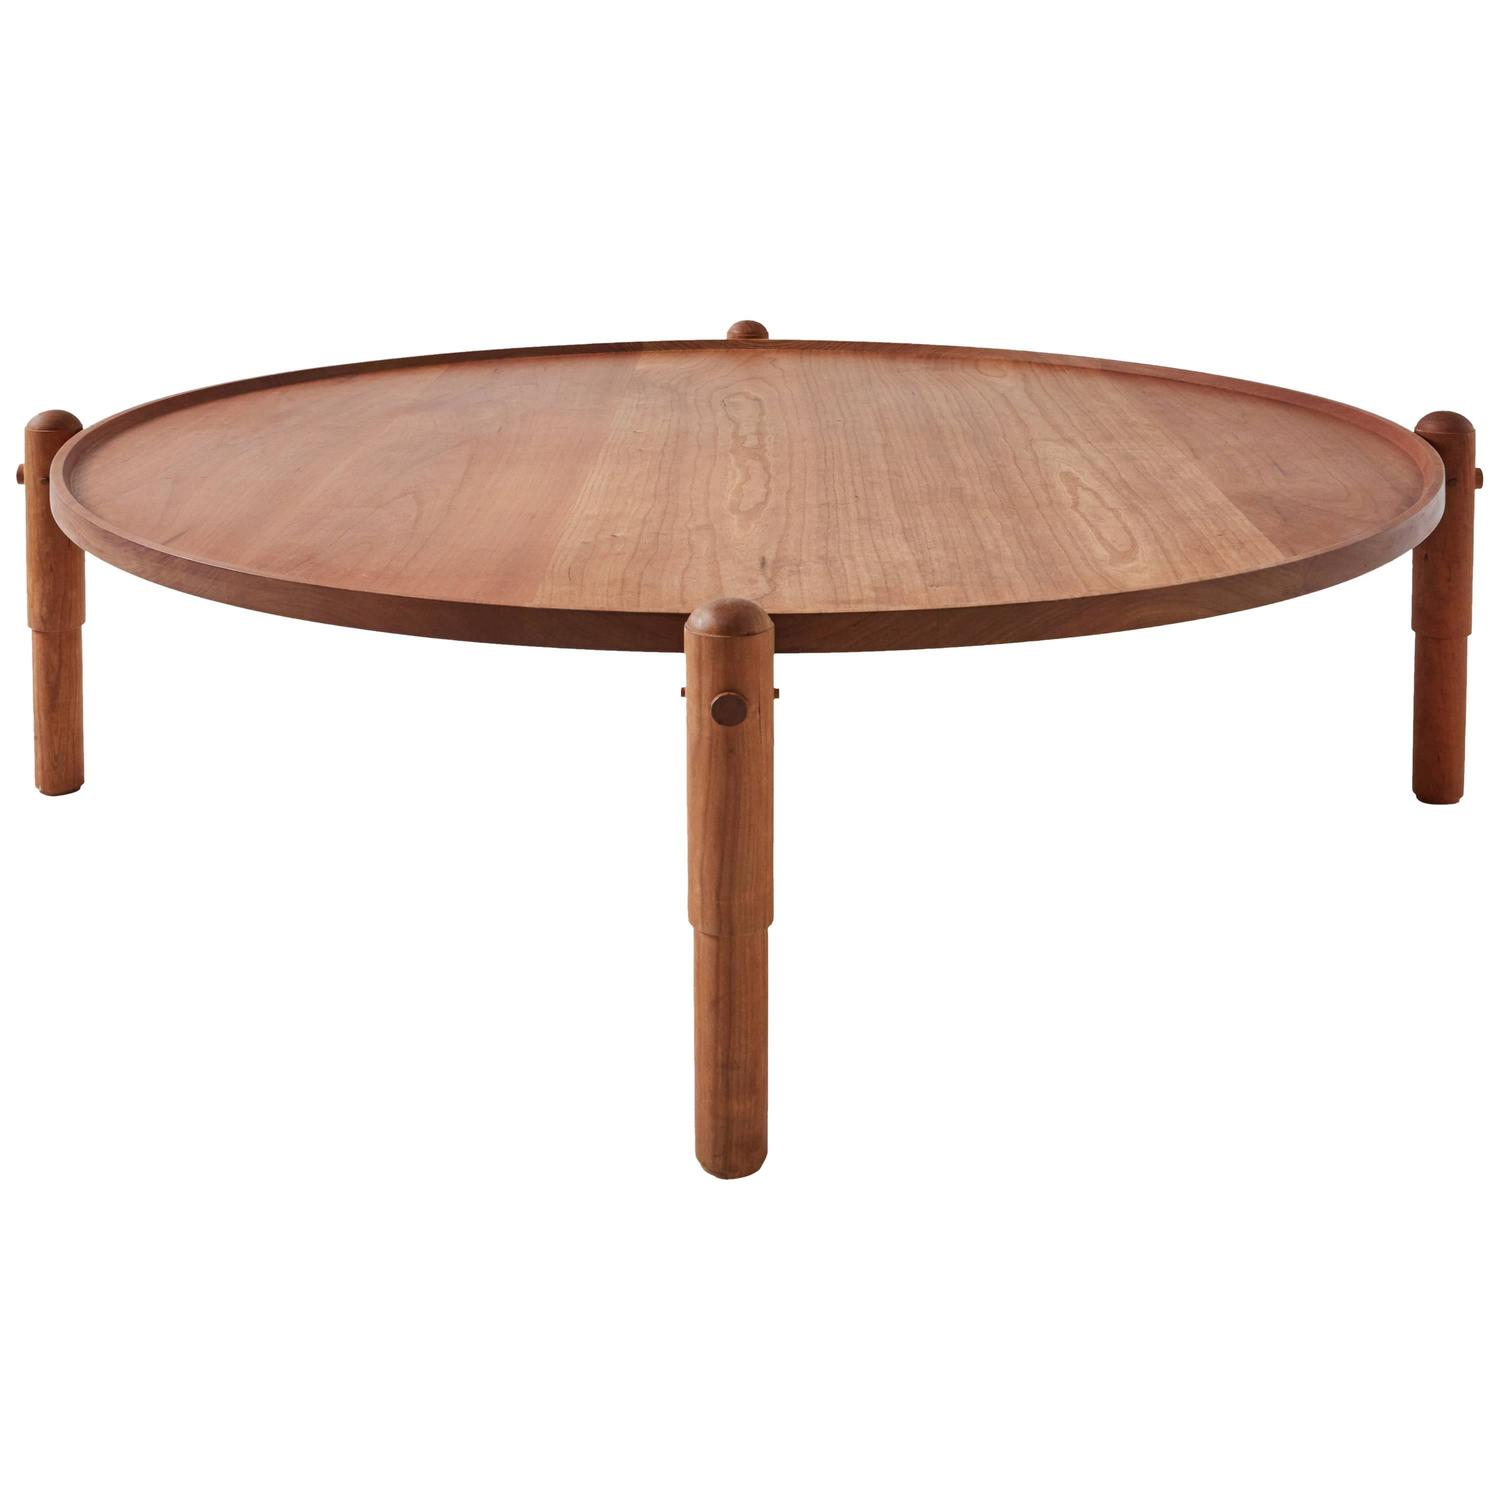 Workstead Coffee Table in Cherry  with Turned Wooden Legs and Circular  Tabletop at 1stdibs. Workstead Coffee Table in Cherry  with Turned Wooden Legs and